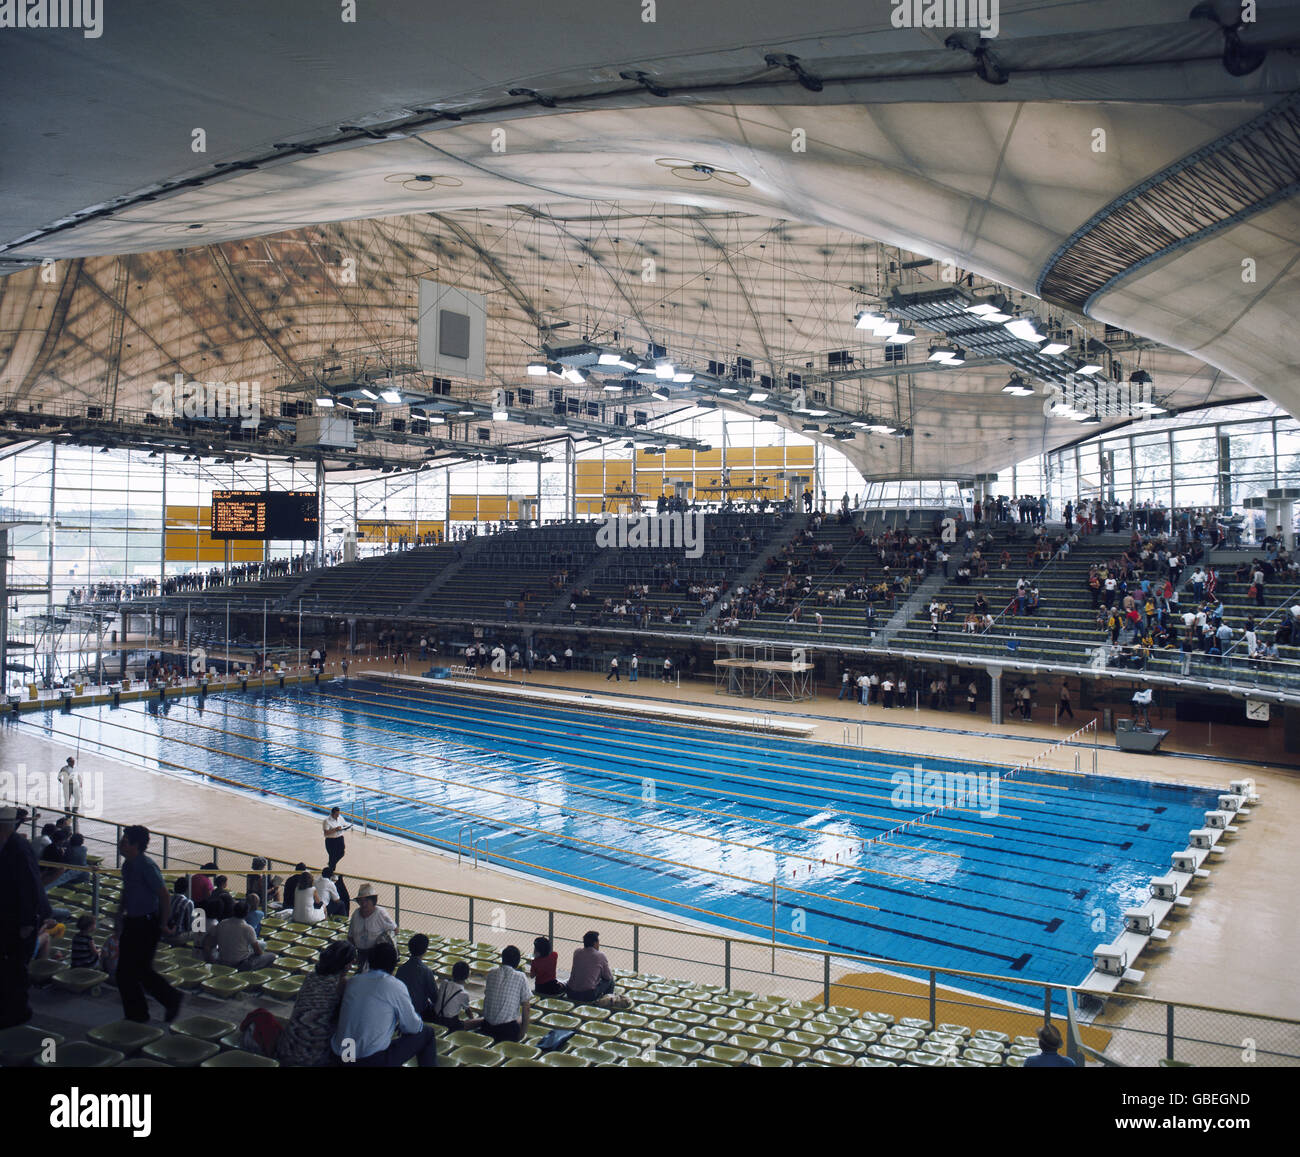 Indoor olympic swimming pool Deep 1191972 Indoor Swimming Pool Interior View 1972 20th Century Historic Historical Germany Frg Olympics Hall Olympic Park Olympic Games Olympics Whats On Dubai Sport Olympic Games Munich 268 1191972 Indoor Swimming